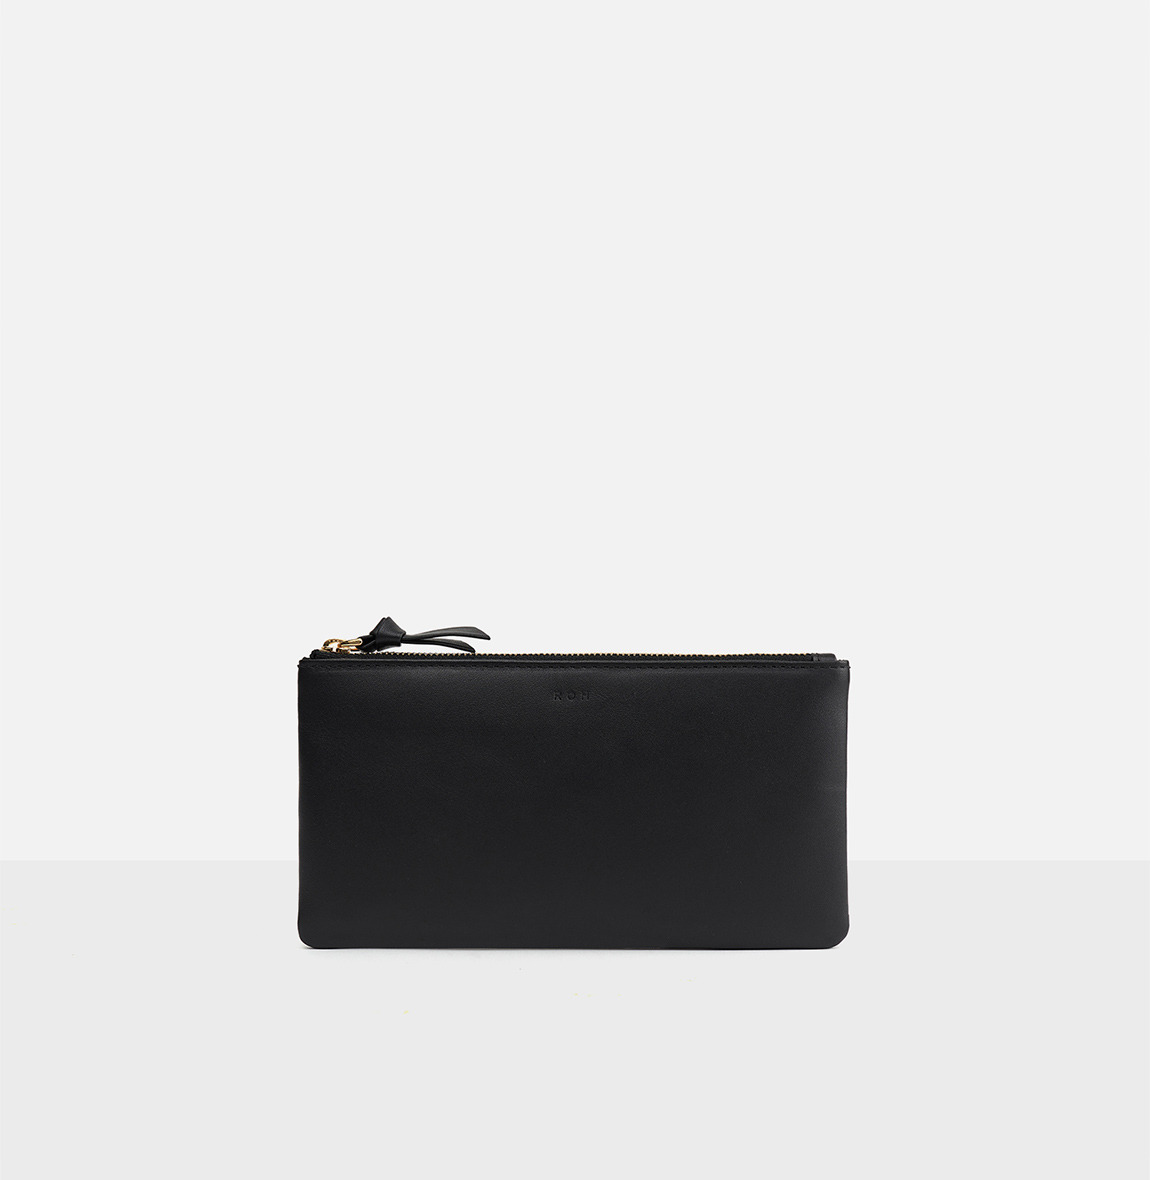 Square large zip wallet Black